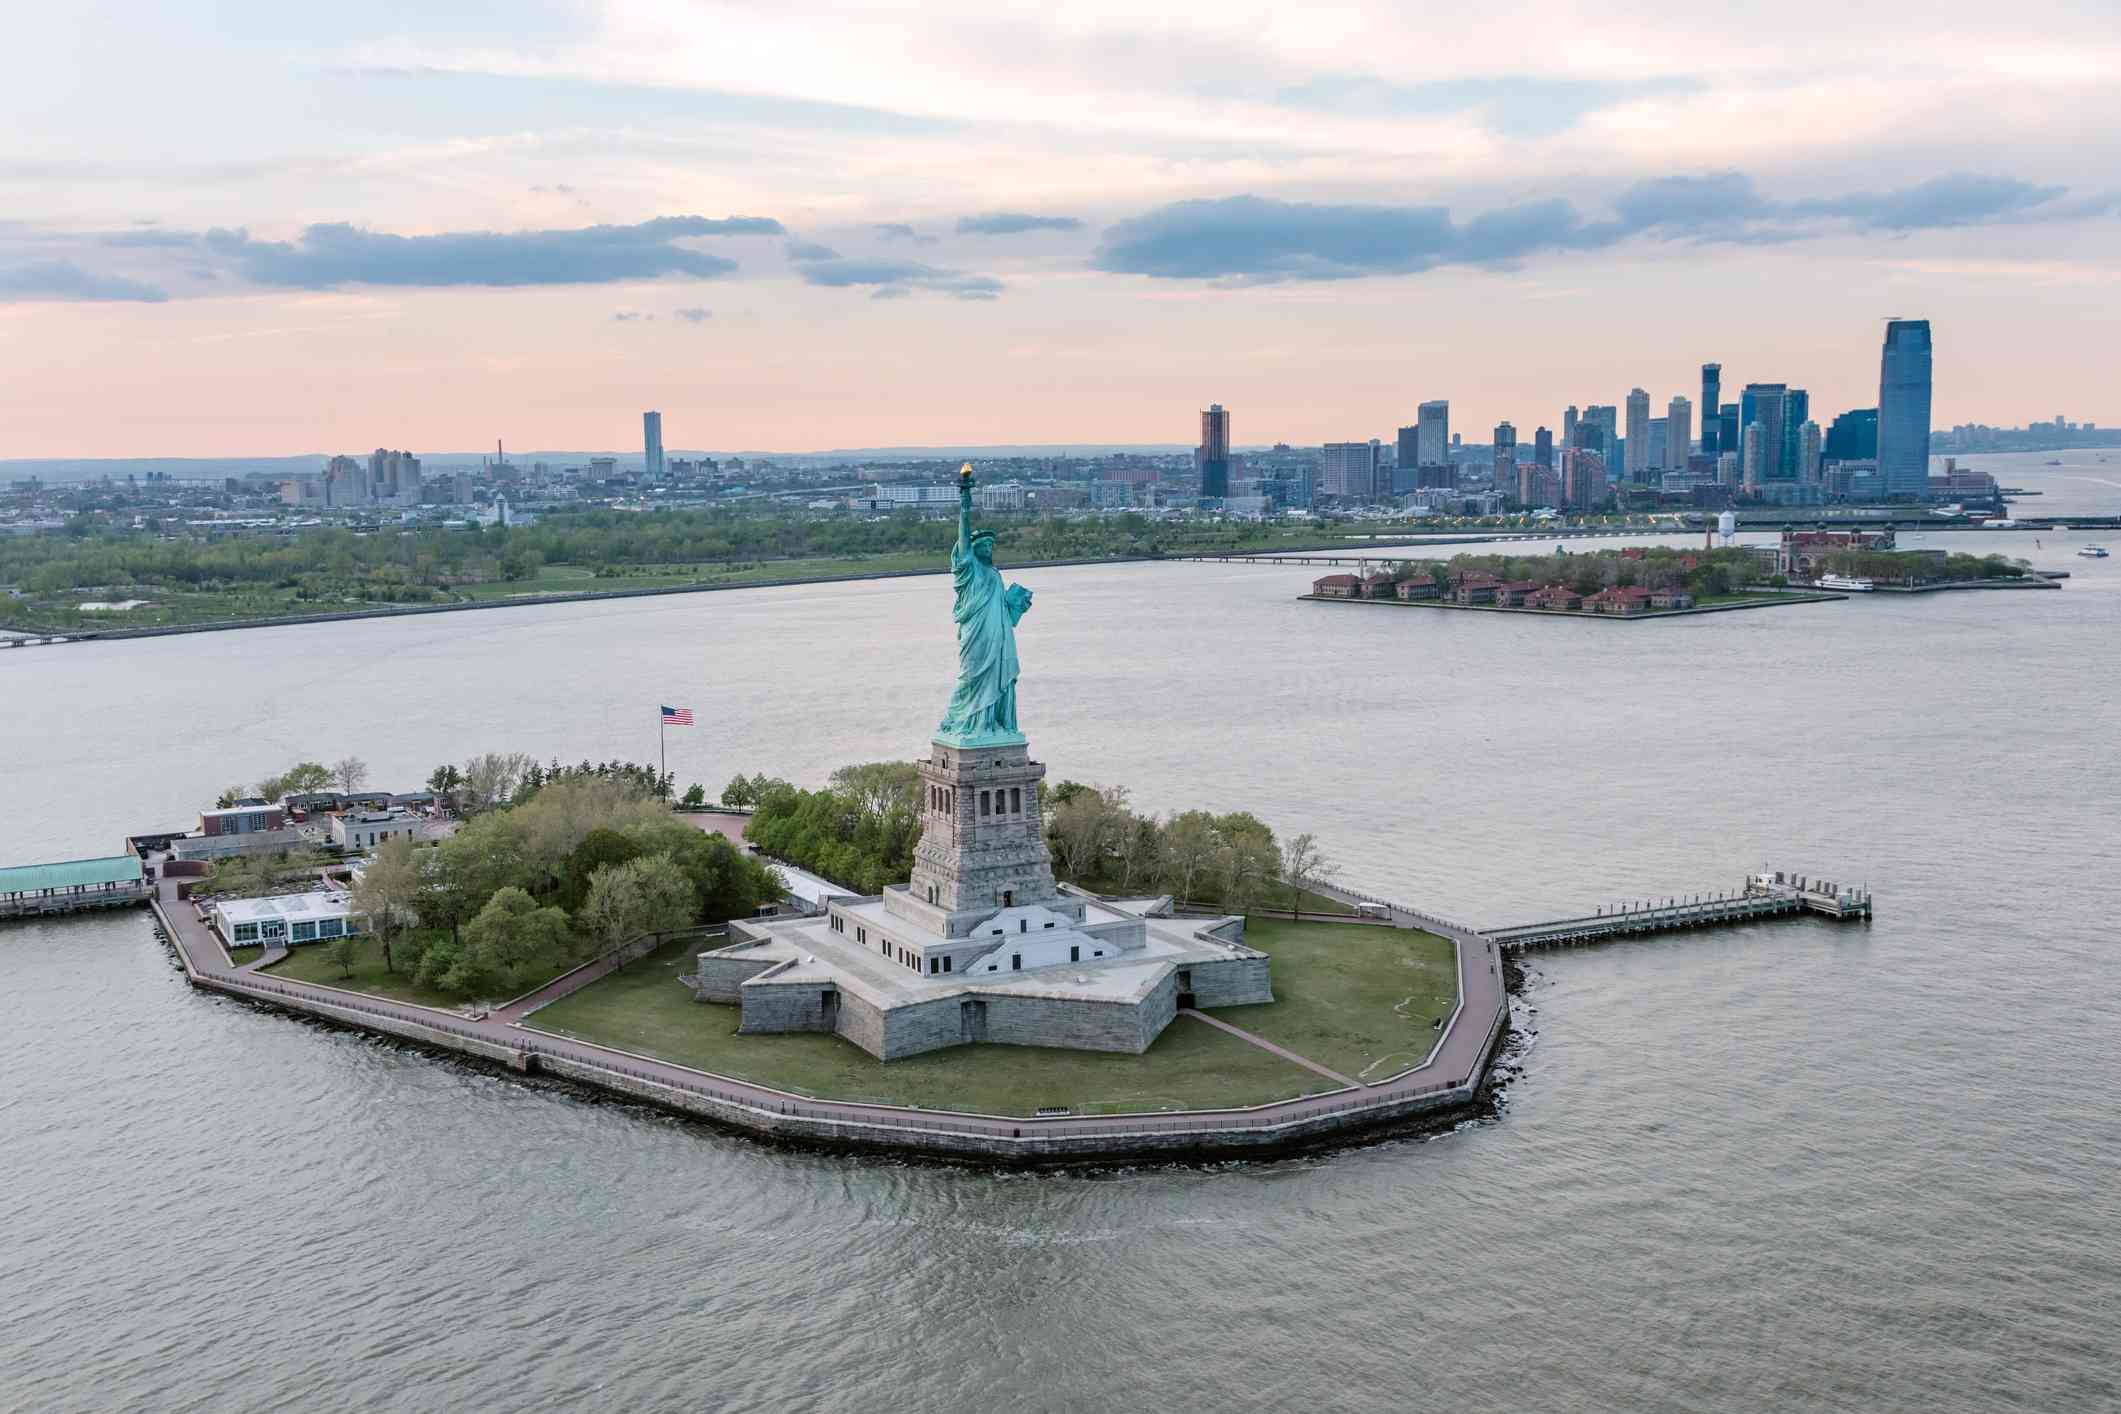 Aerial view of Liberty Island and NYC at sunset